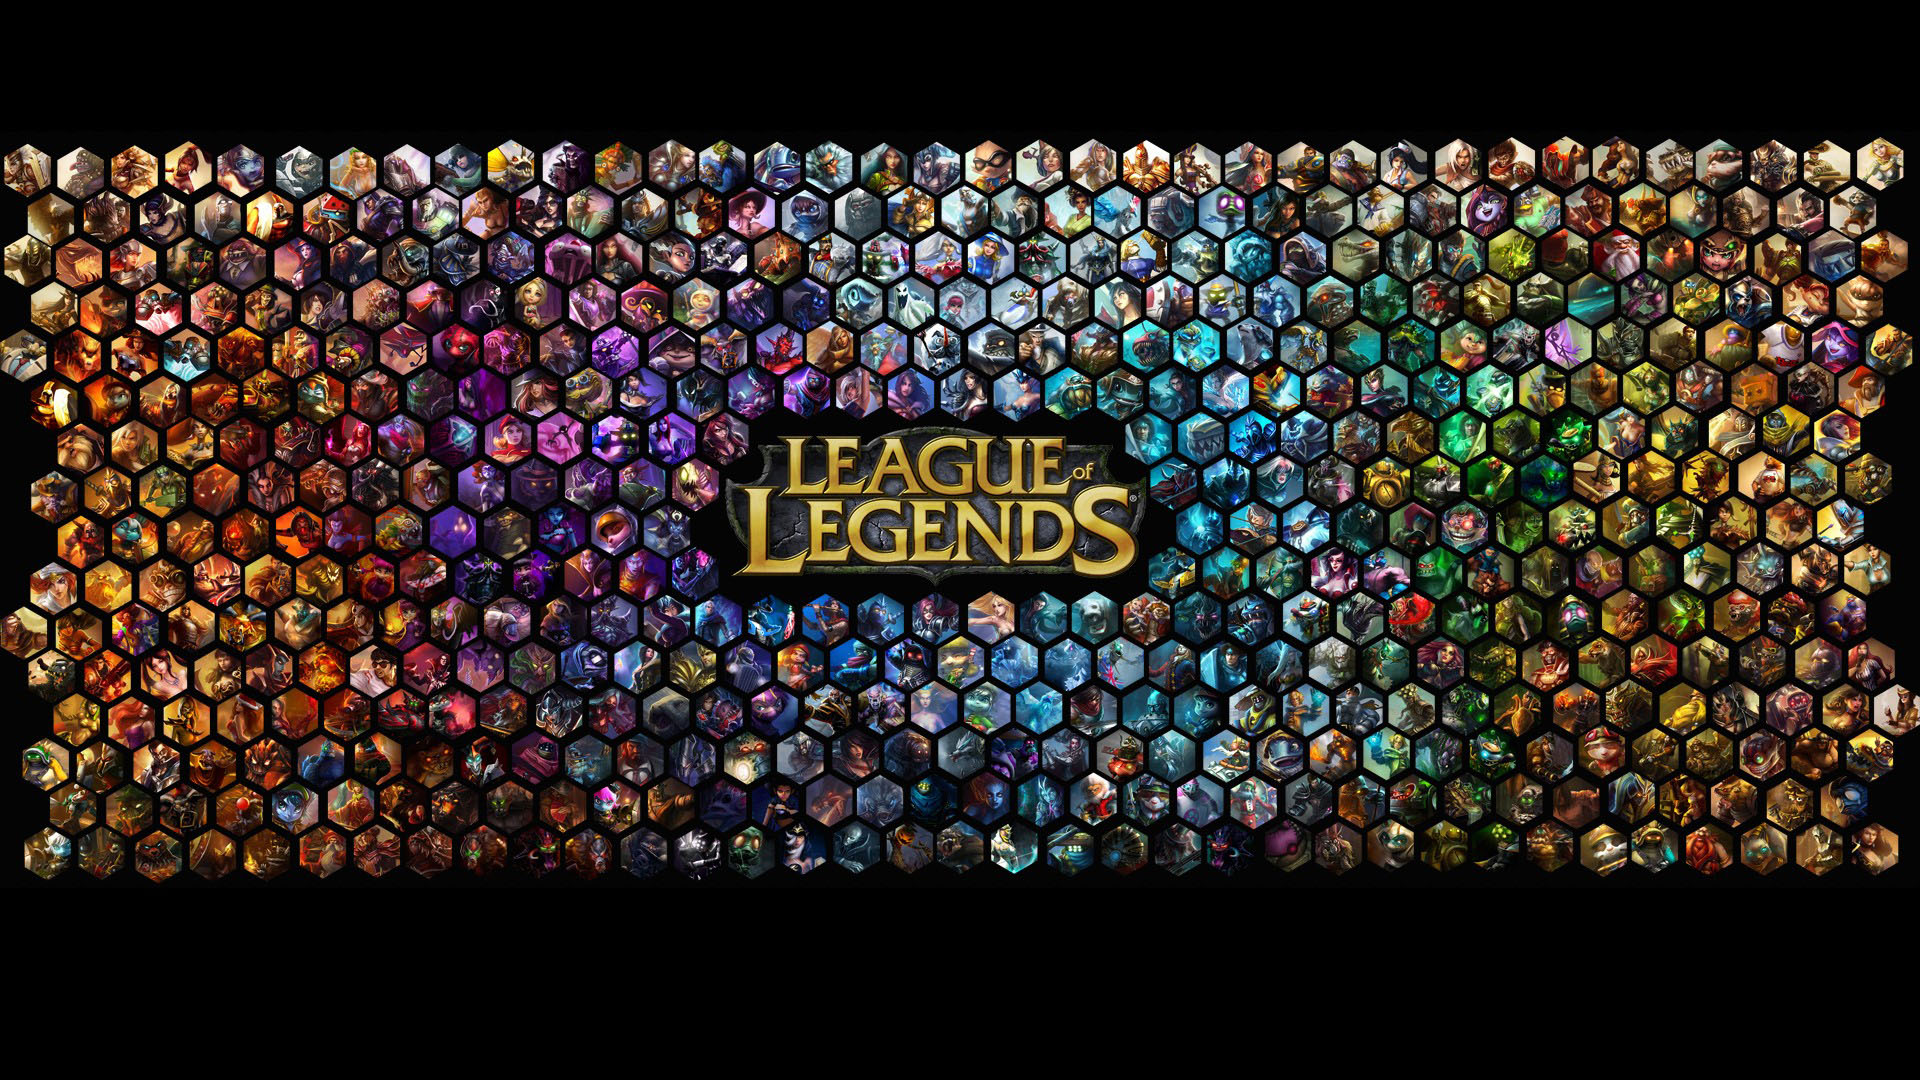 League of Legends- A Worthy Game But At A Cost